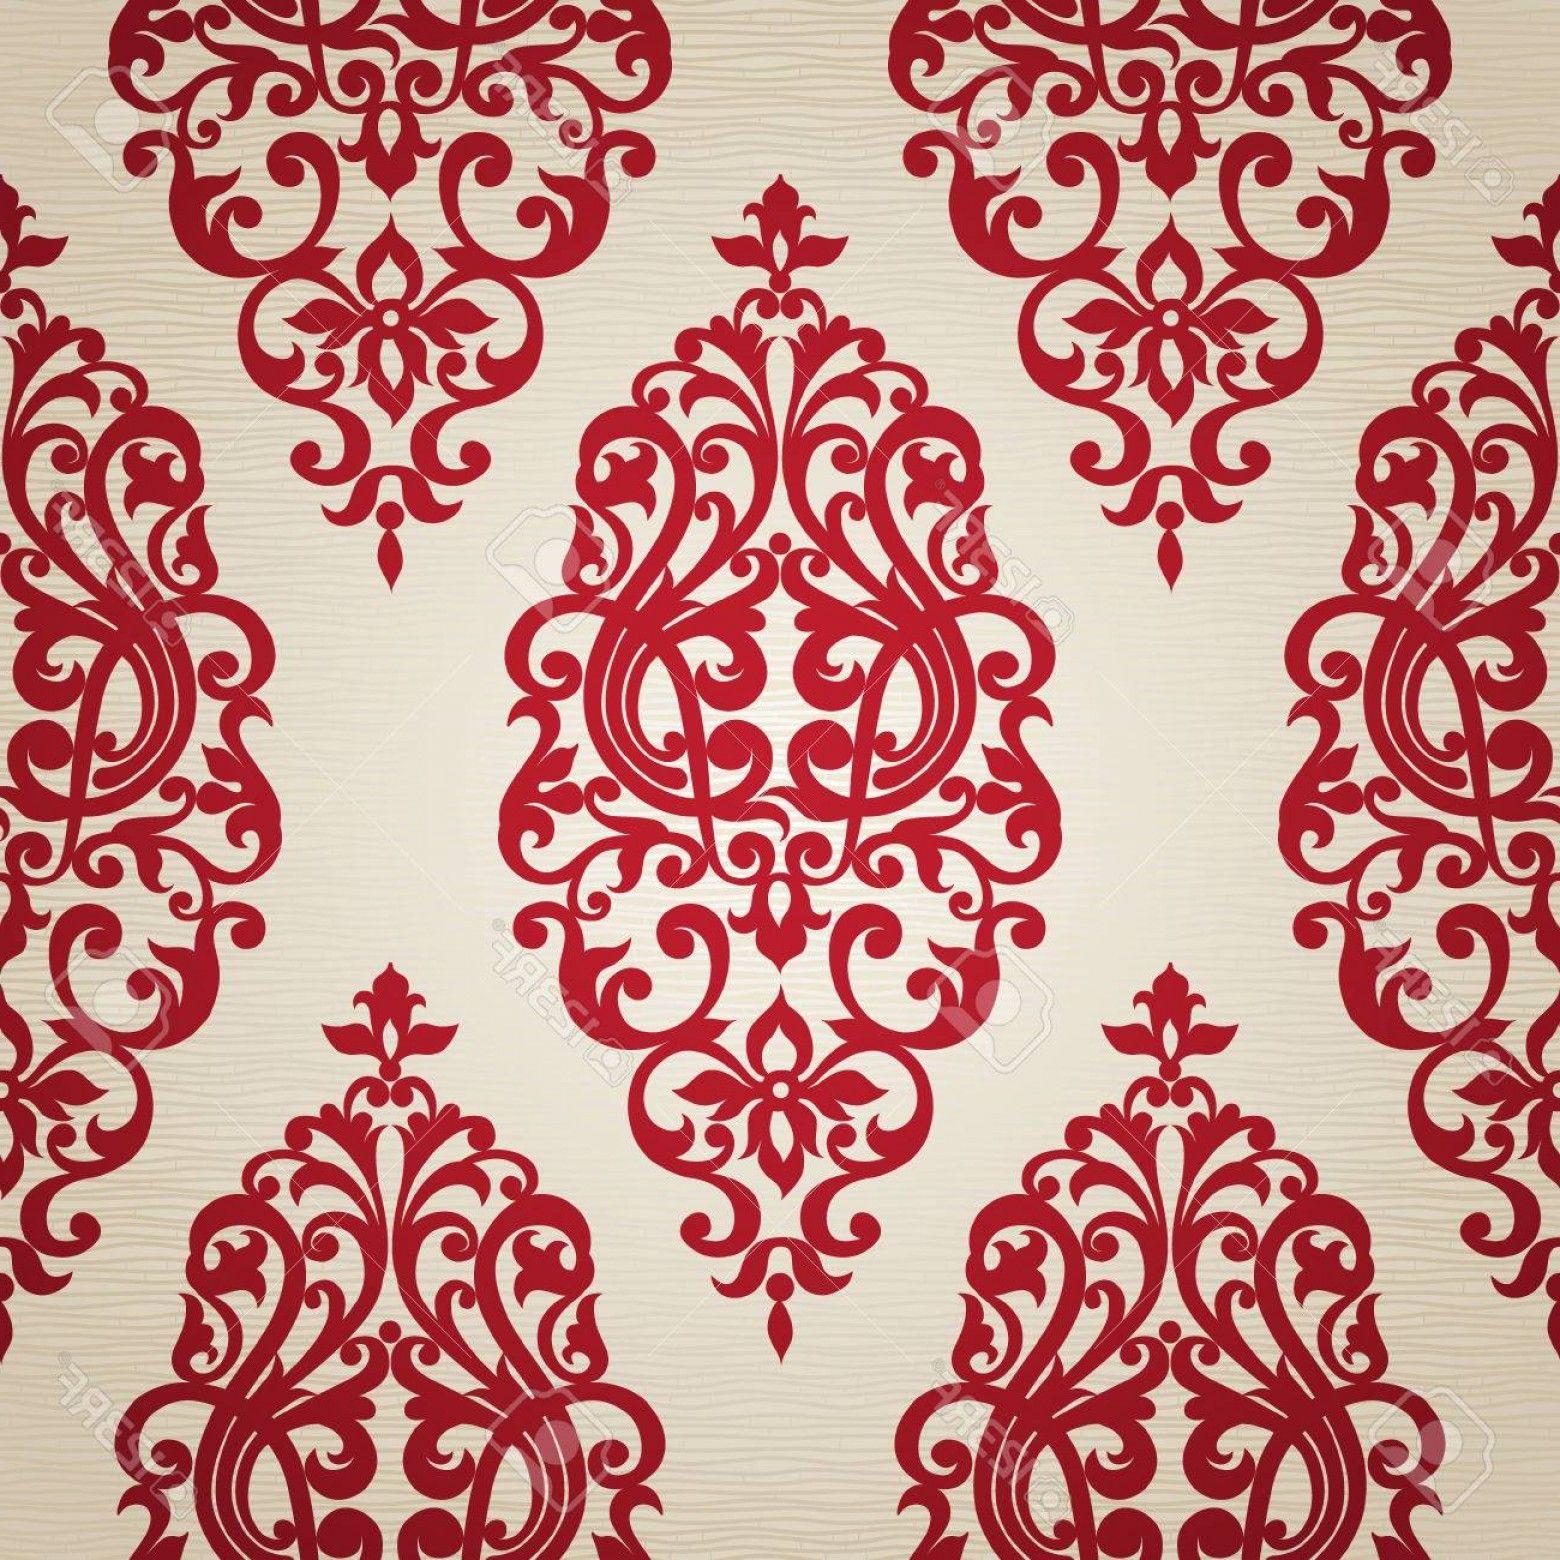 Victorian Motif Vector: Photostock Vector Vector Seamless Pattern With Swirls And Floral Motifs In Retro Style Victorian Background Of Contras